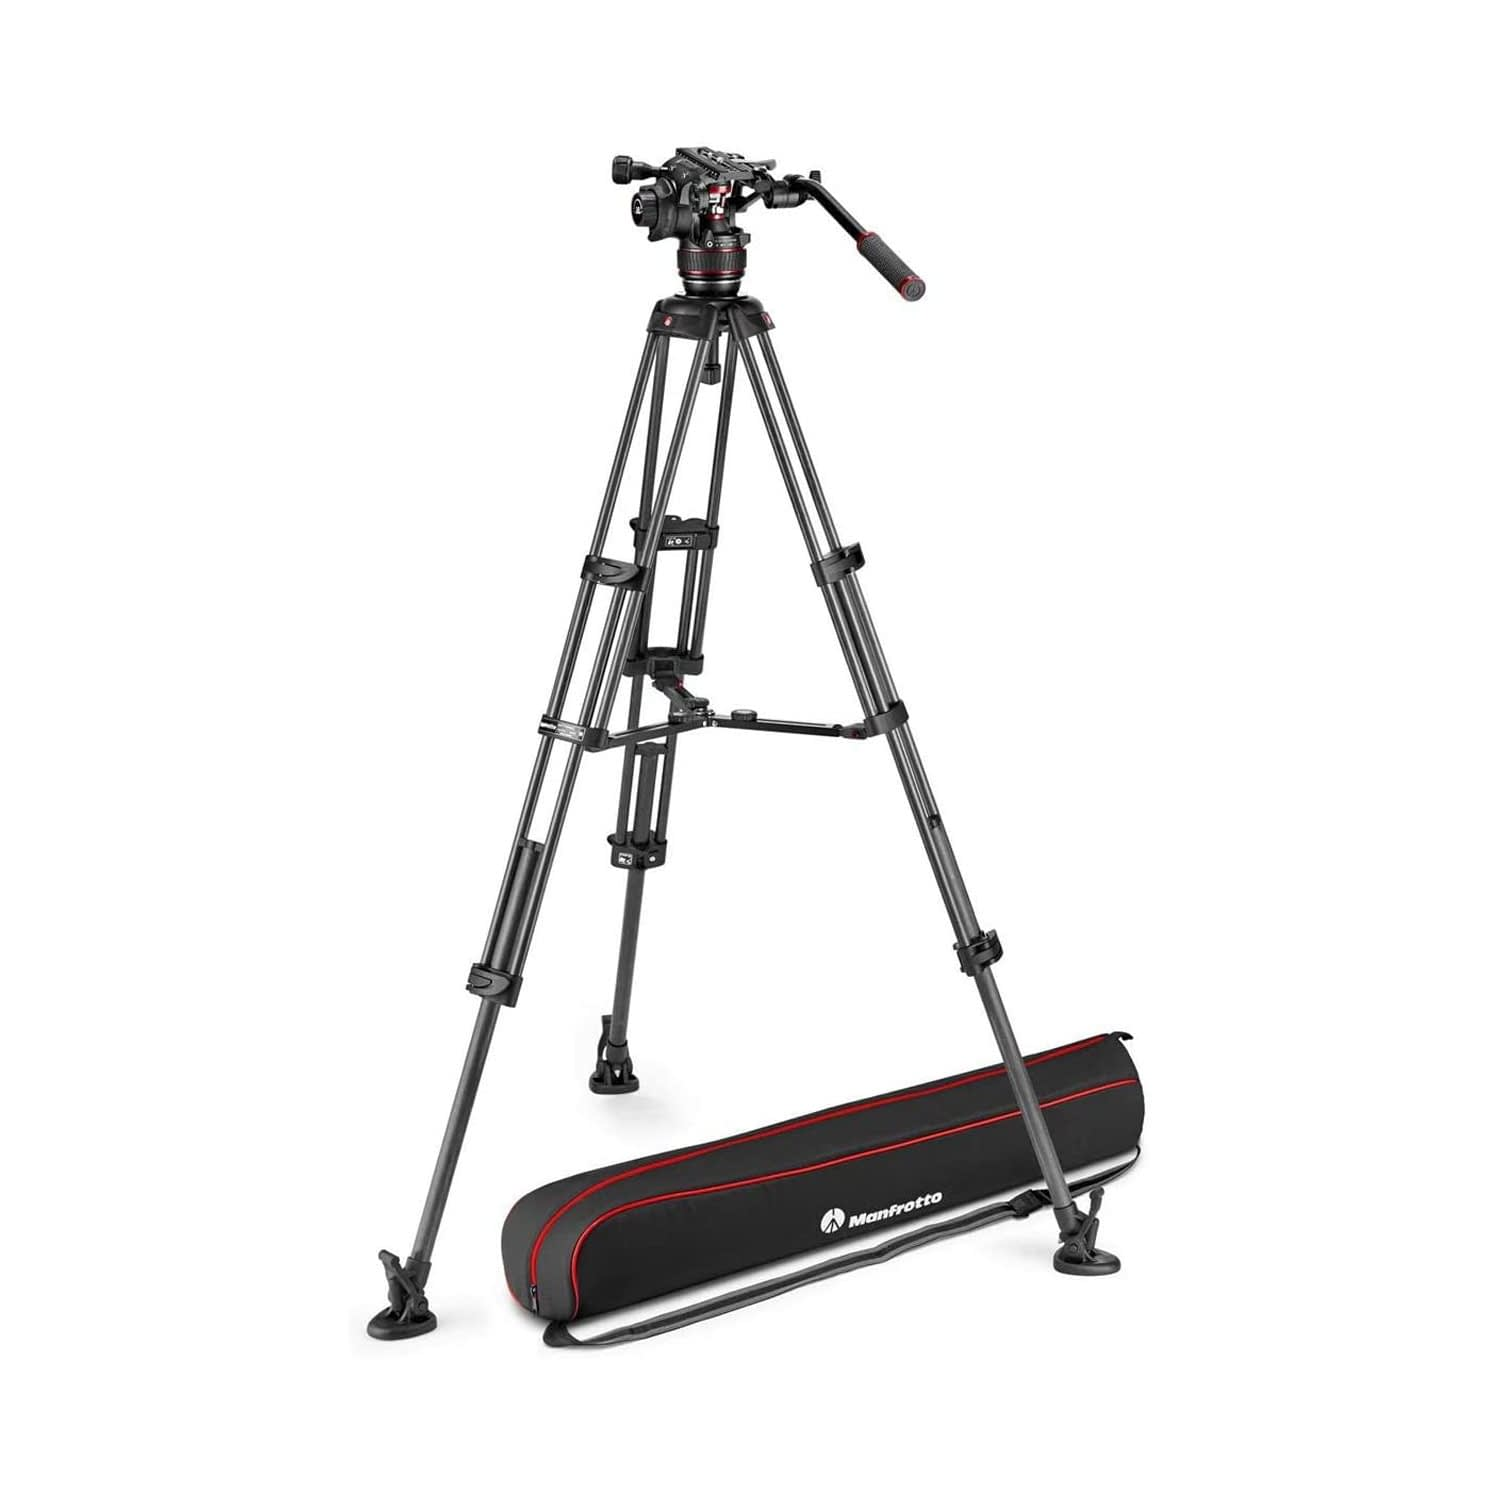 Manfrotto Camera Tripod